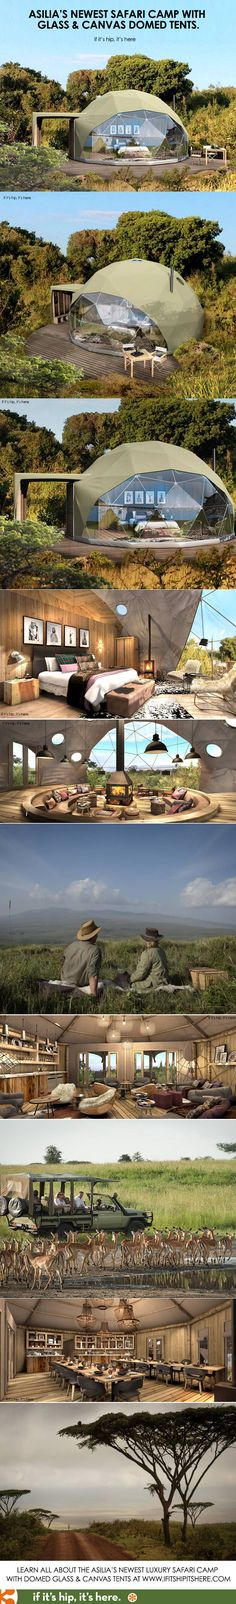 Now, THIS is the way to Safari! learn more at http://www.ifitshipitshere.com/the-highlands-ngorongoro/